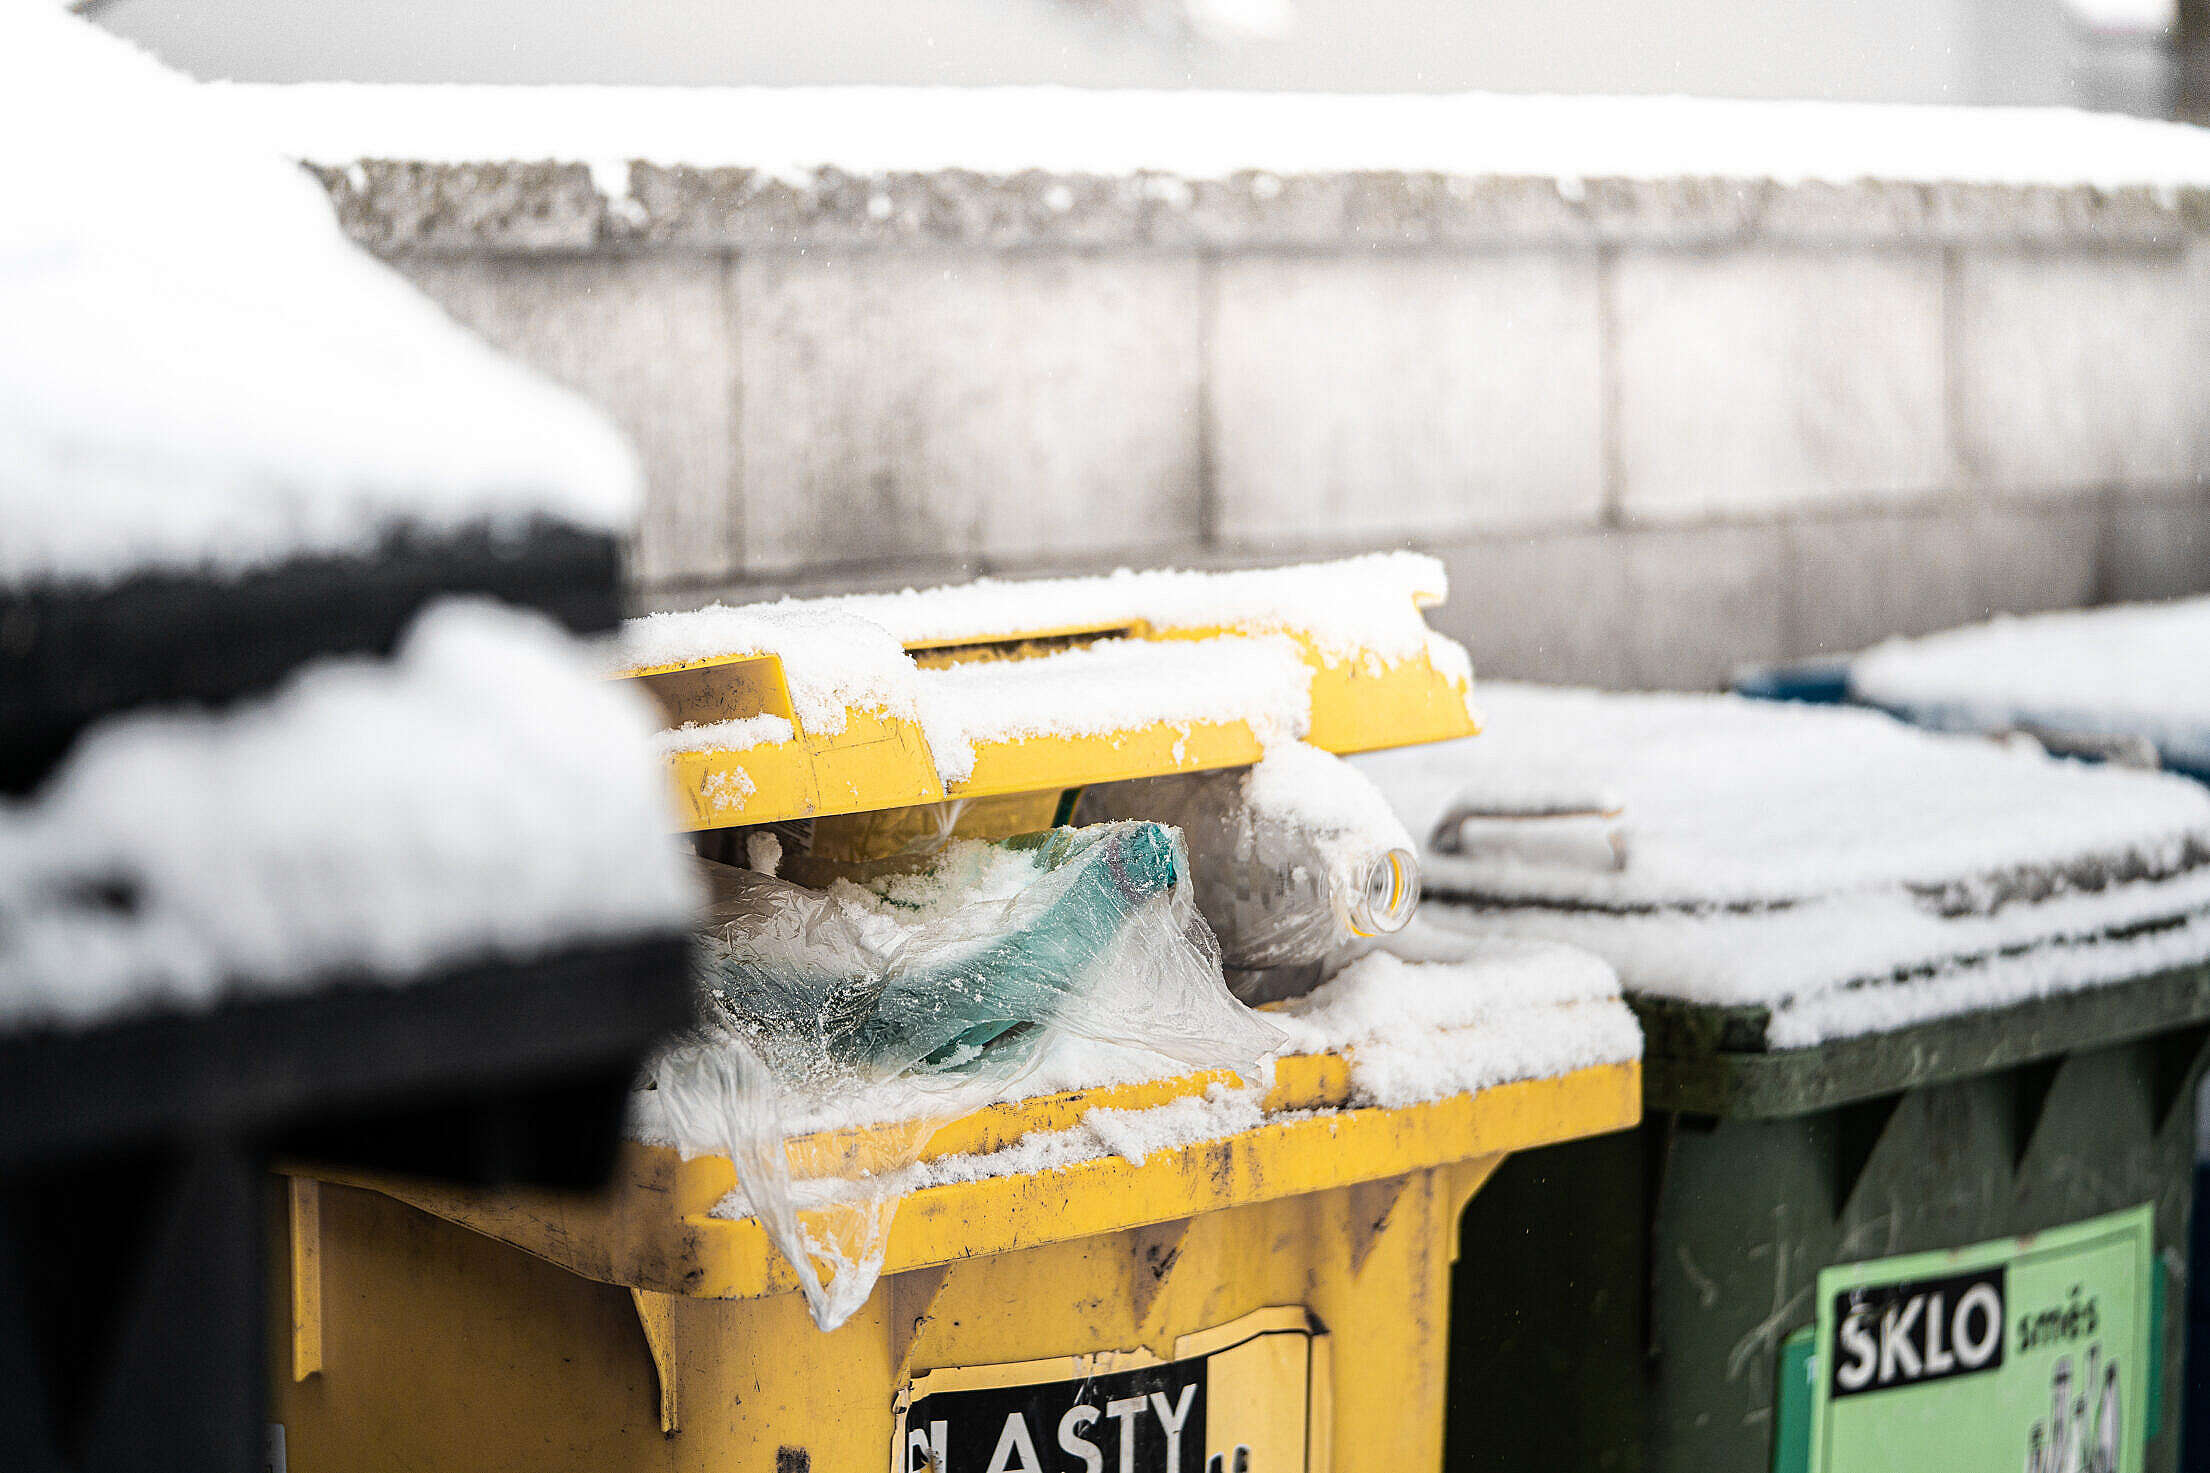 Snowy Trash Cans Free Stock Photo